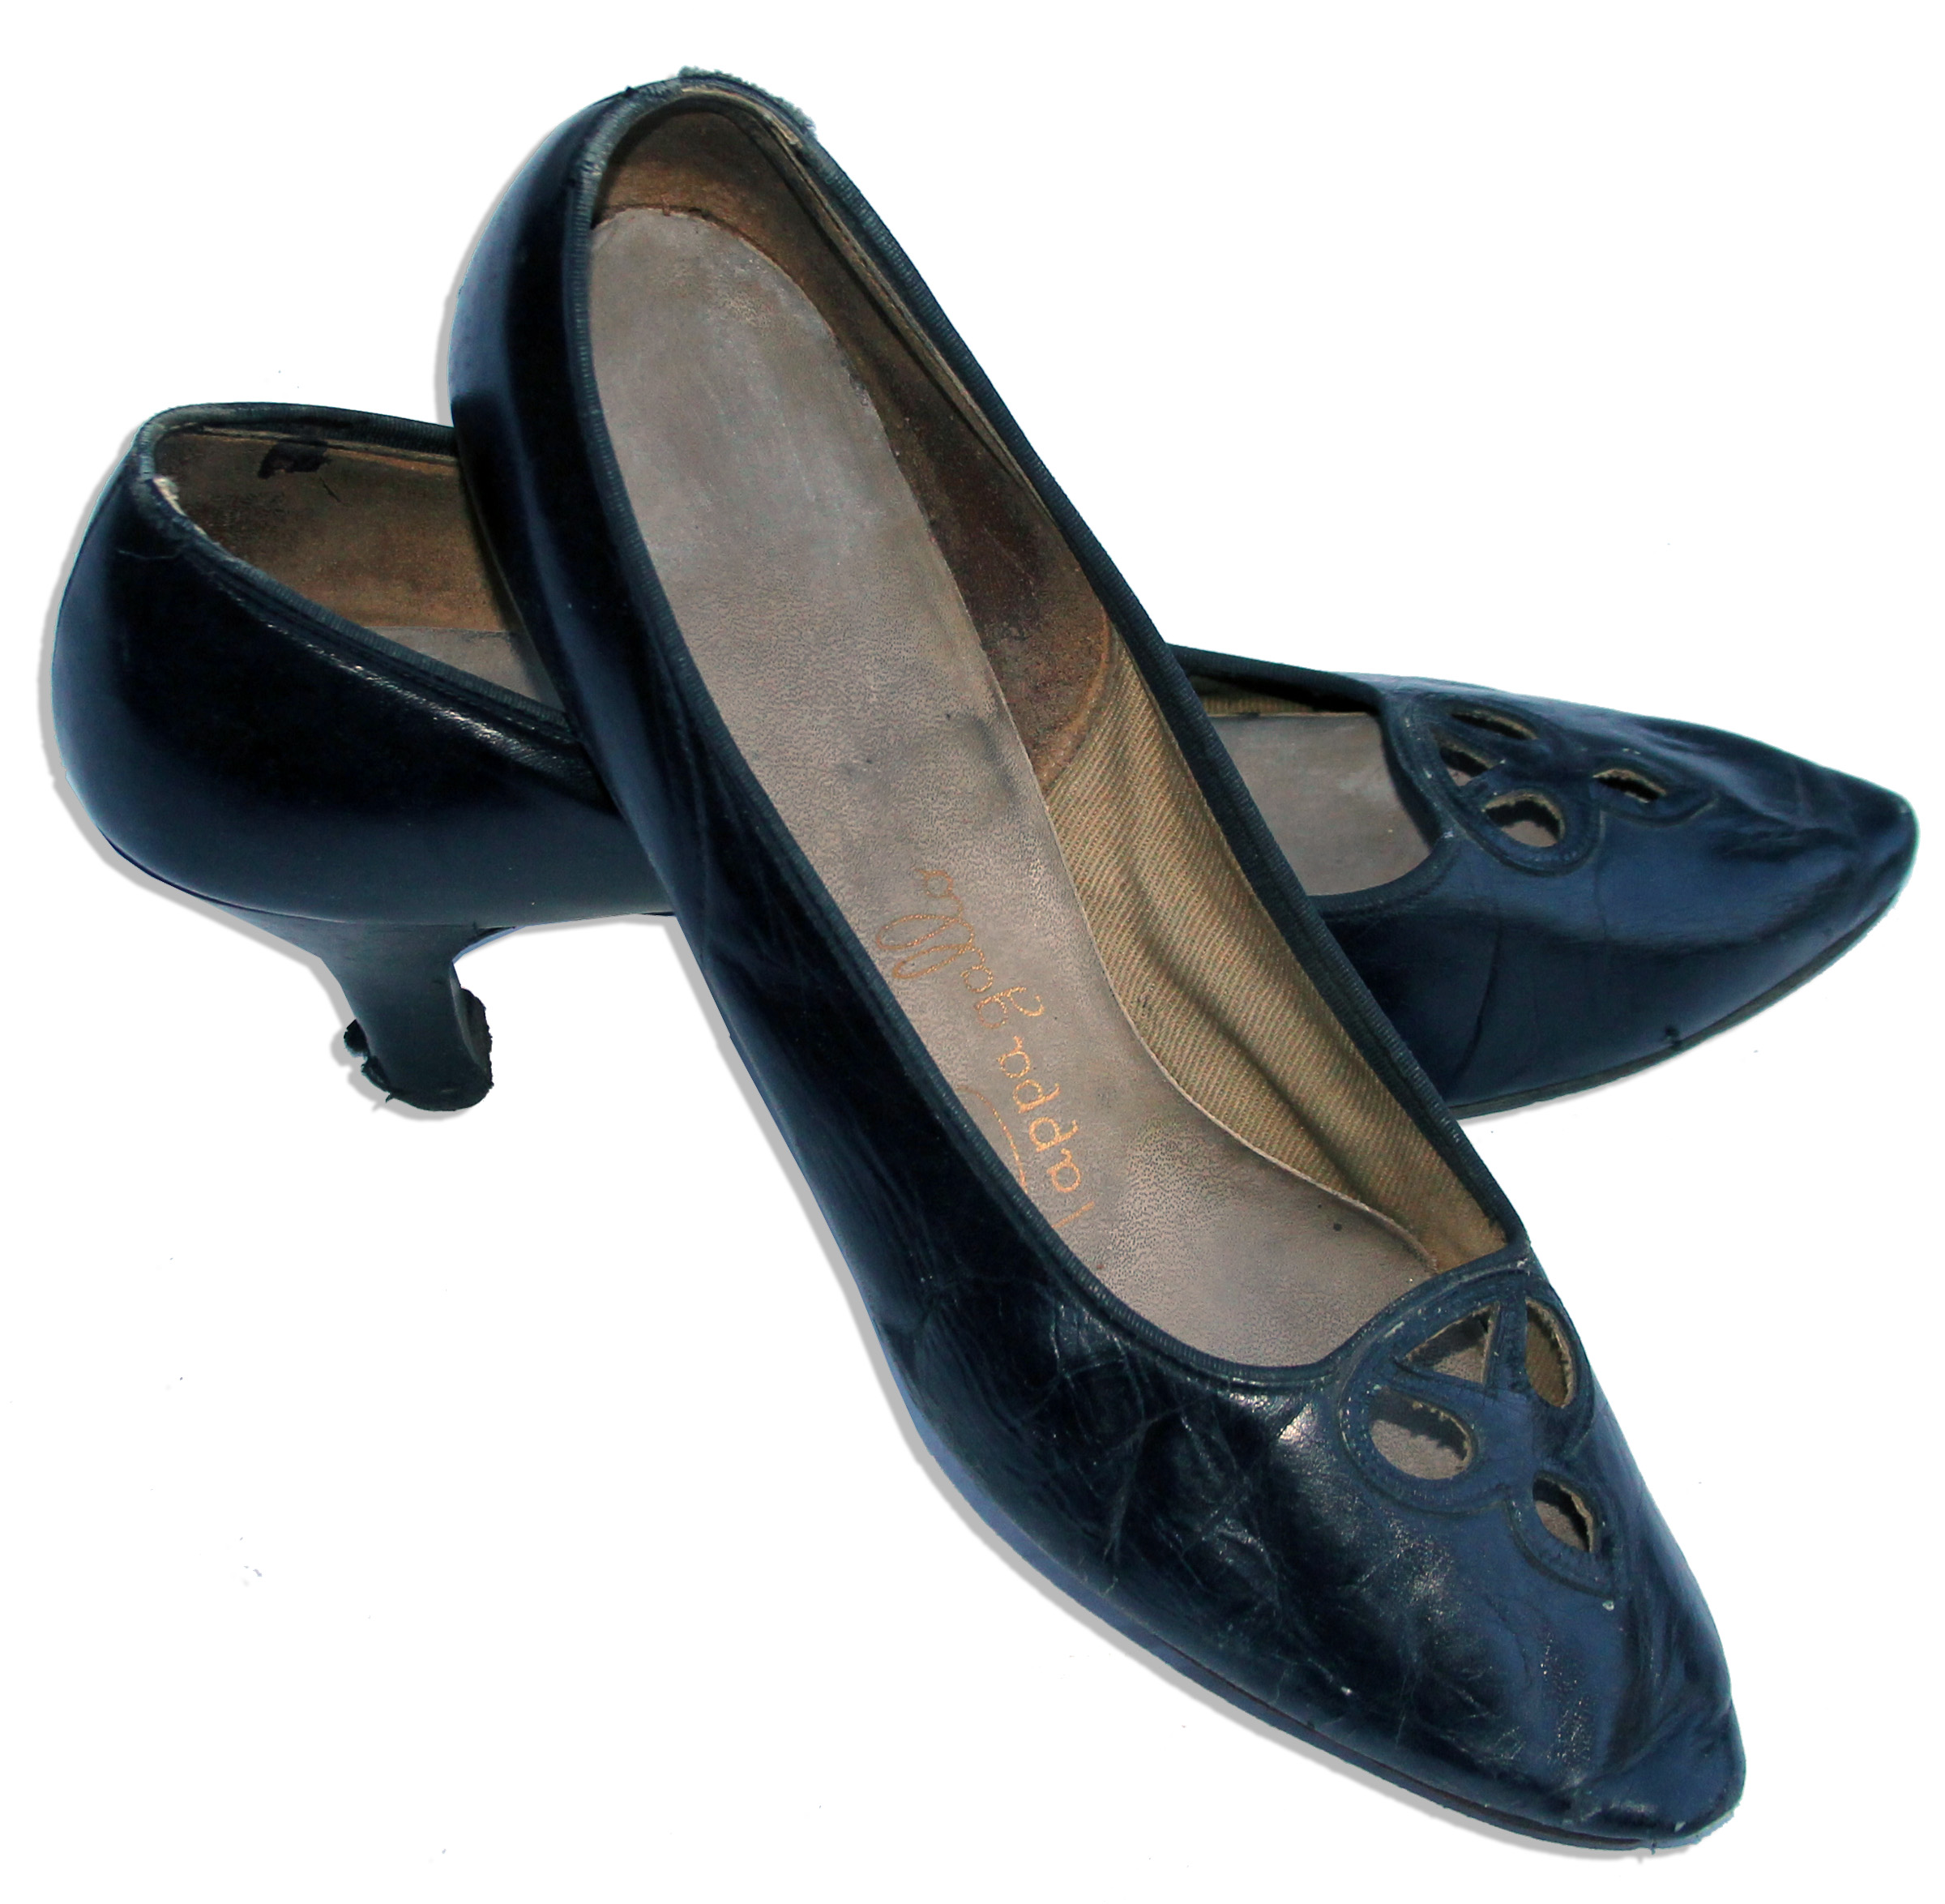 Jackie Kennedy Personally Owned Worn Shoes The Style She Porized